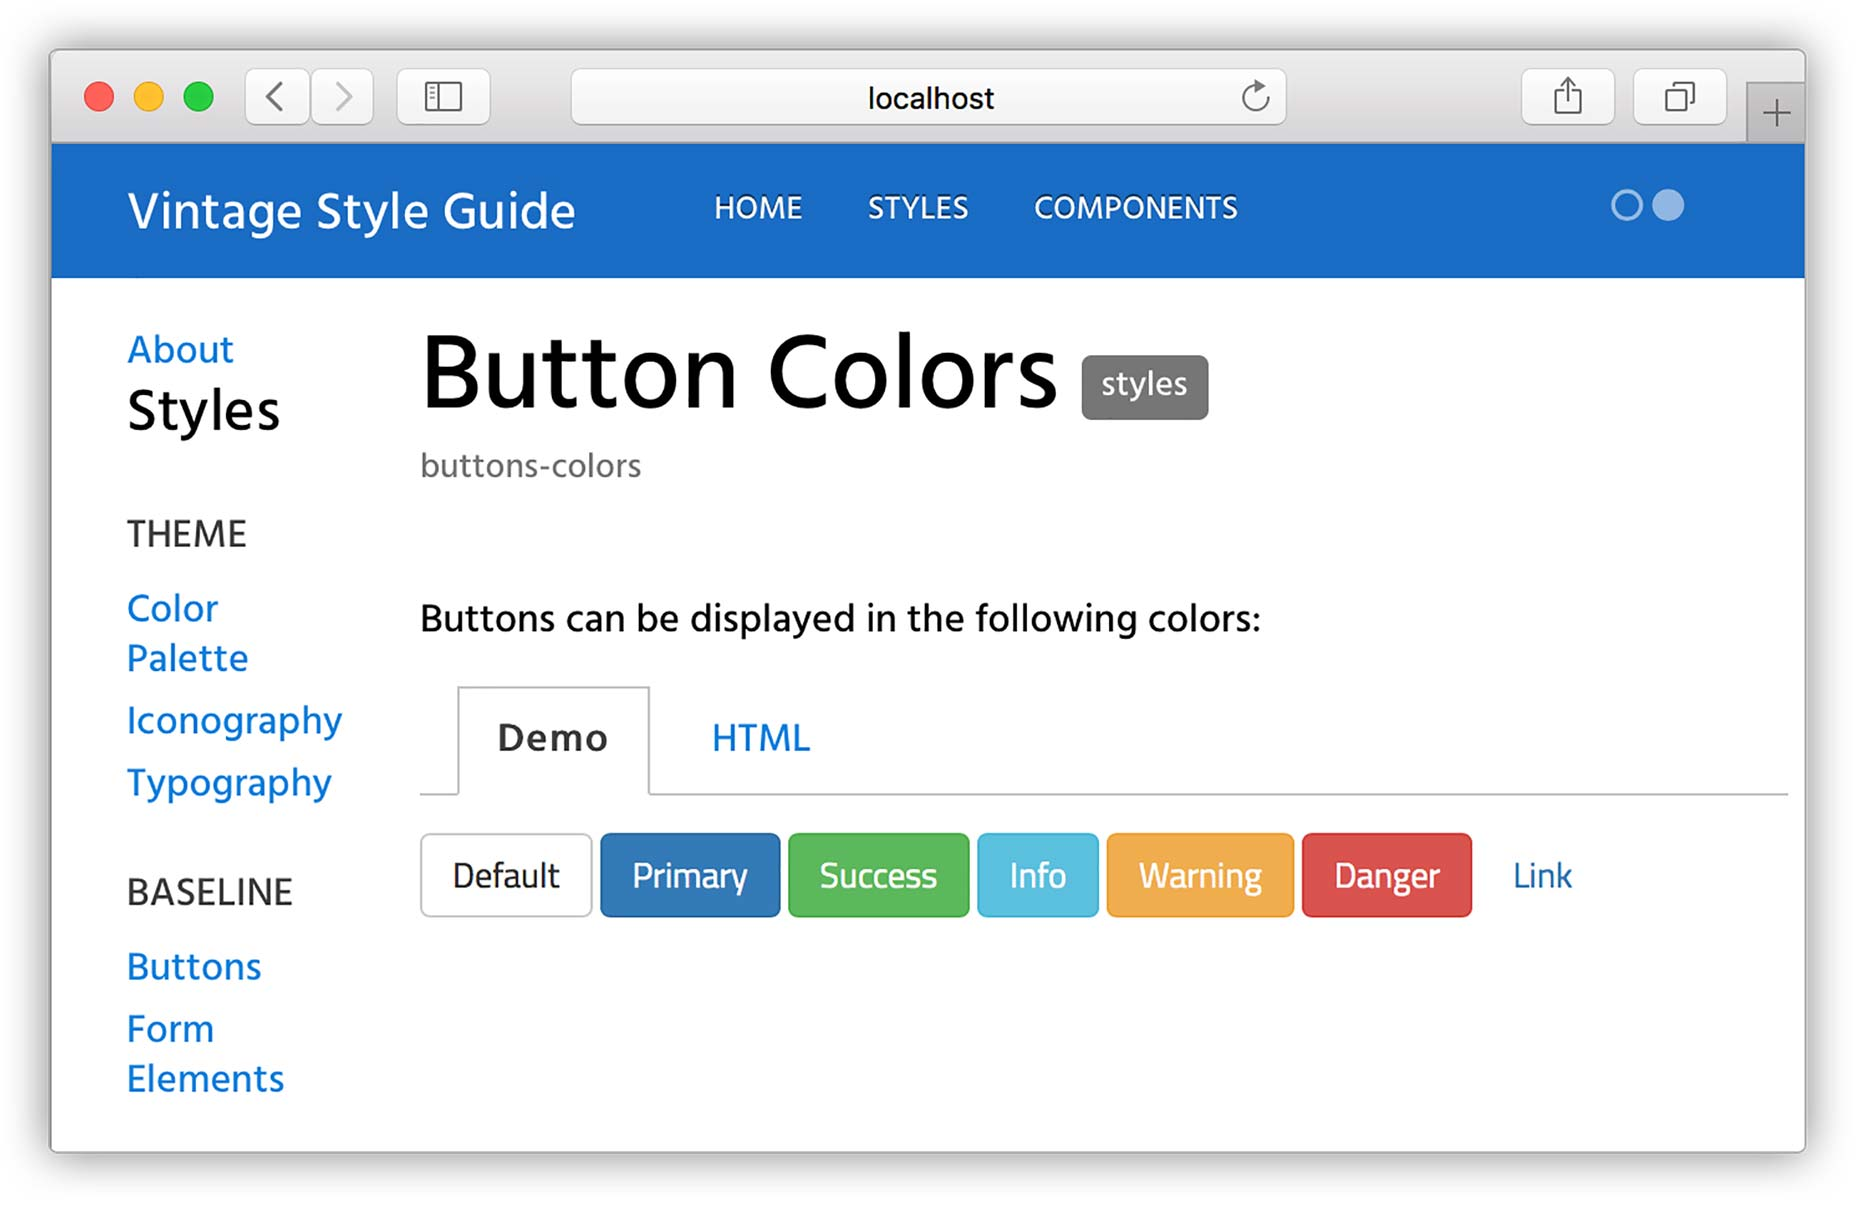 9-style-guide-buttons-6-buttons